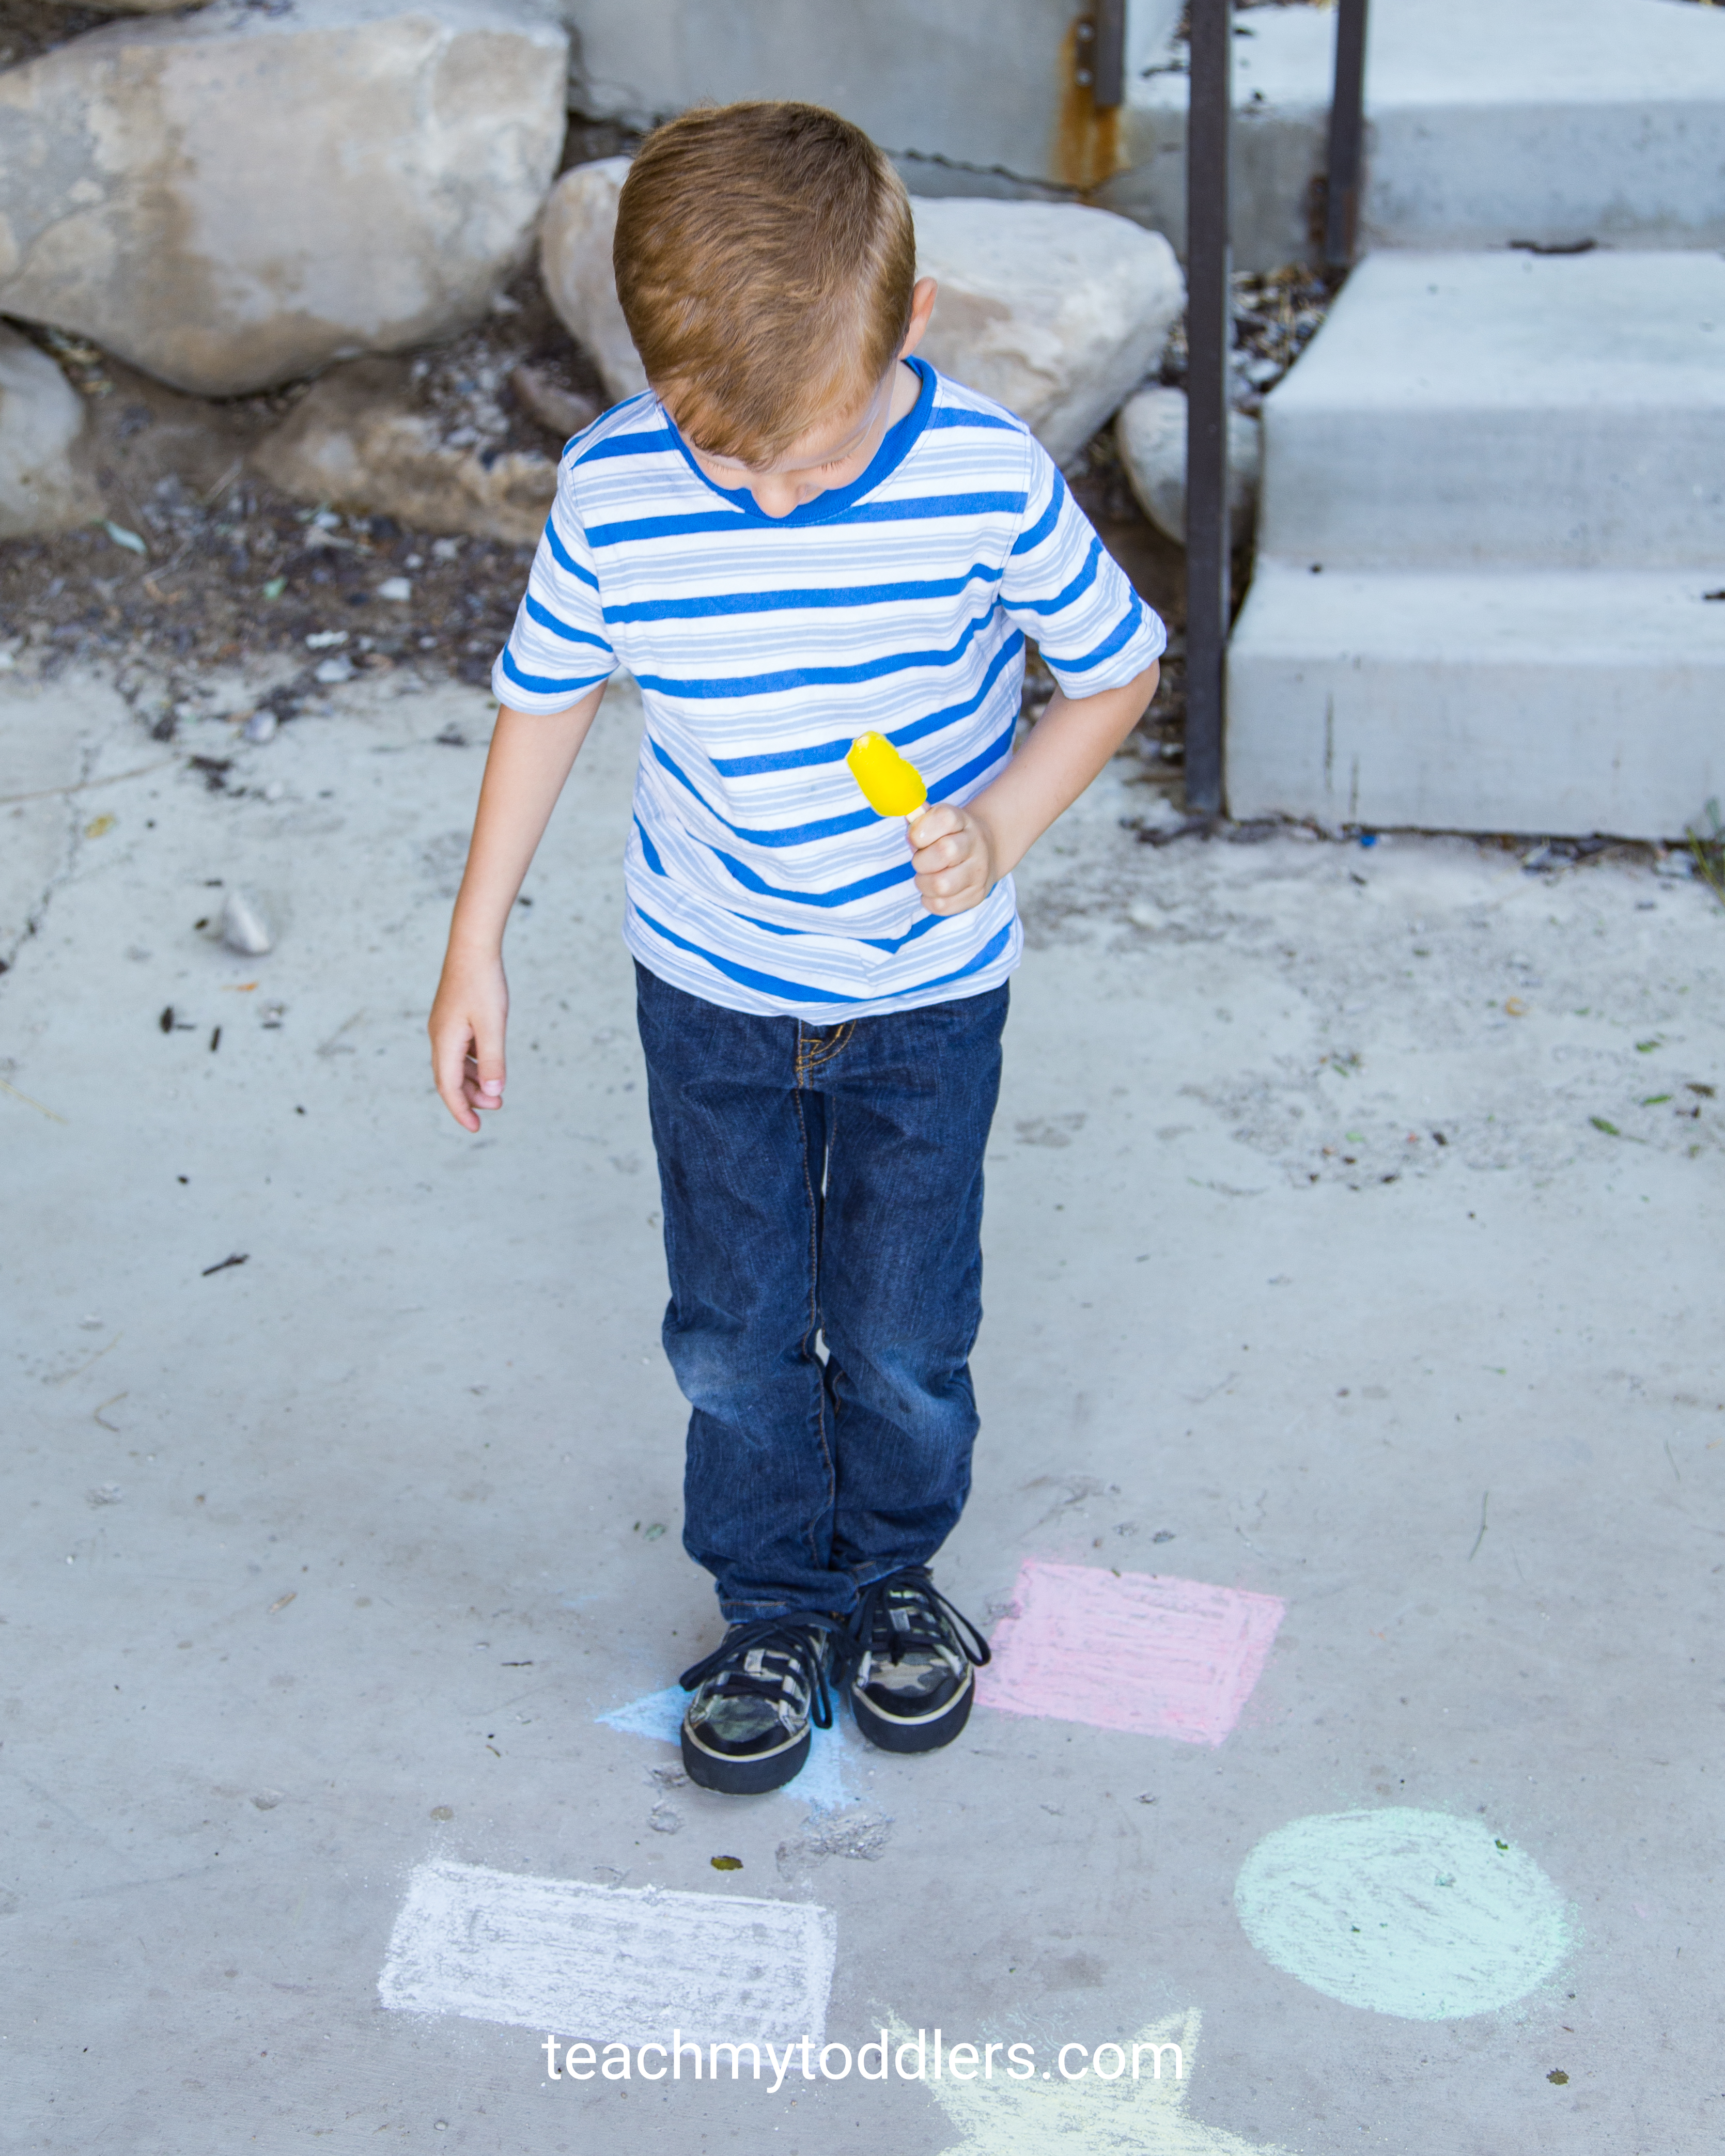 Use this fun activity to teach your toddlers gross motor skills by jumping on chalk shapes